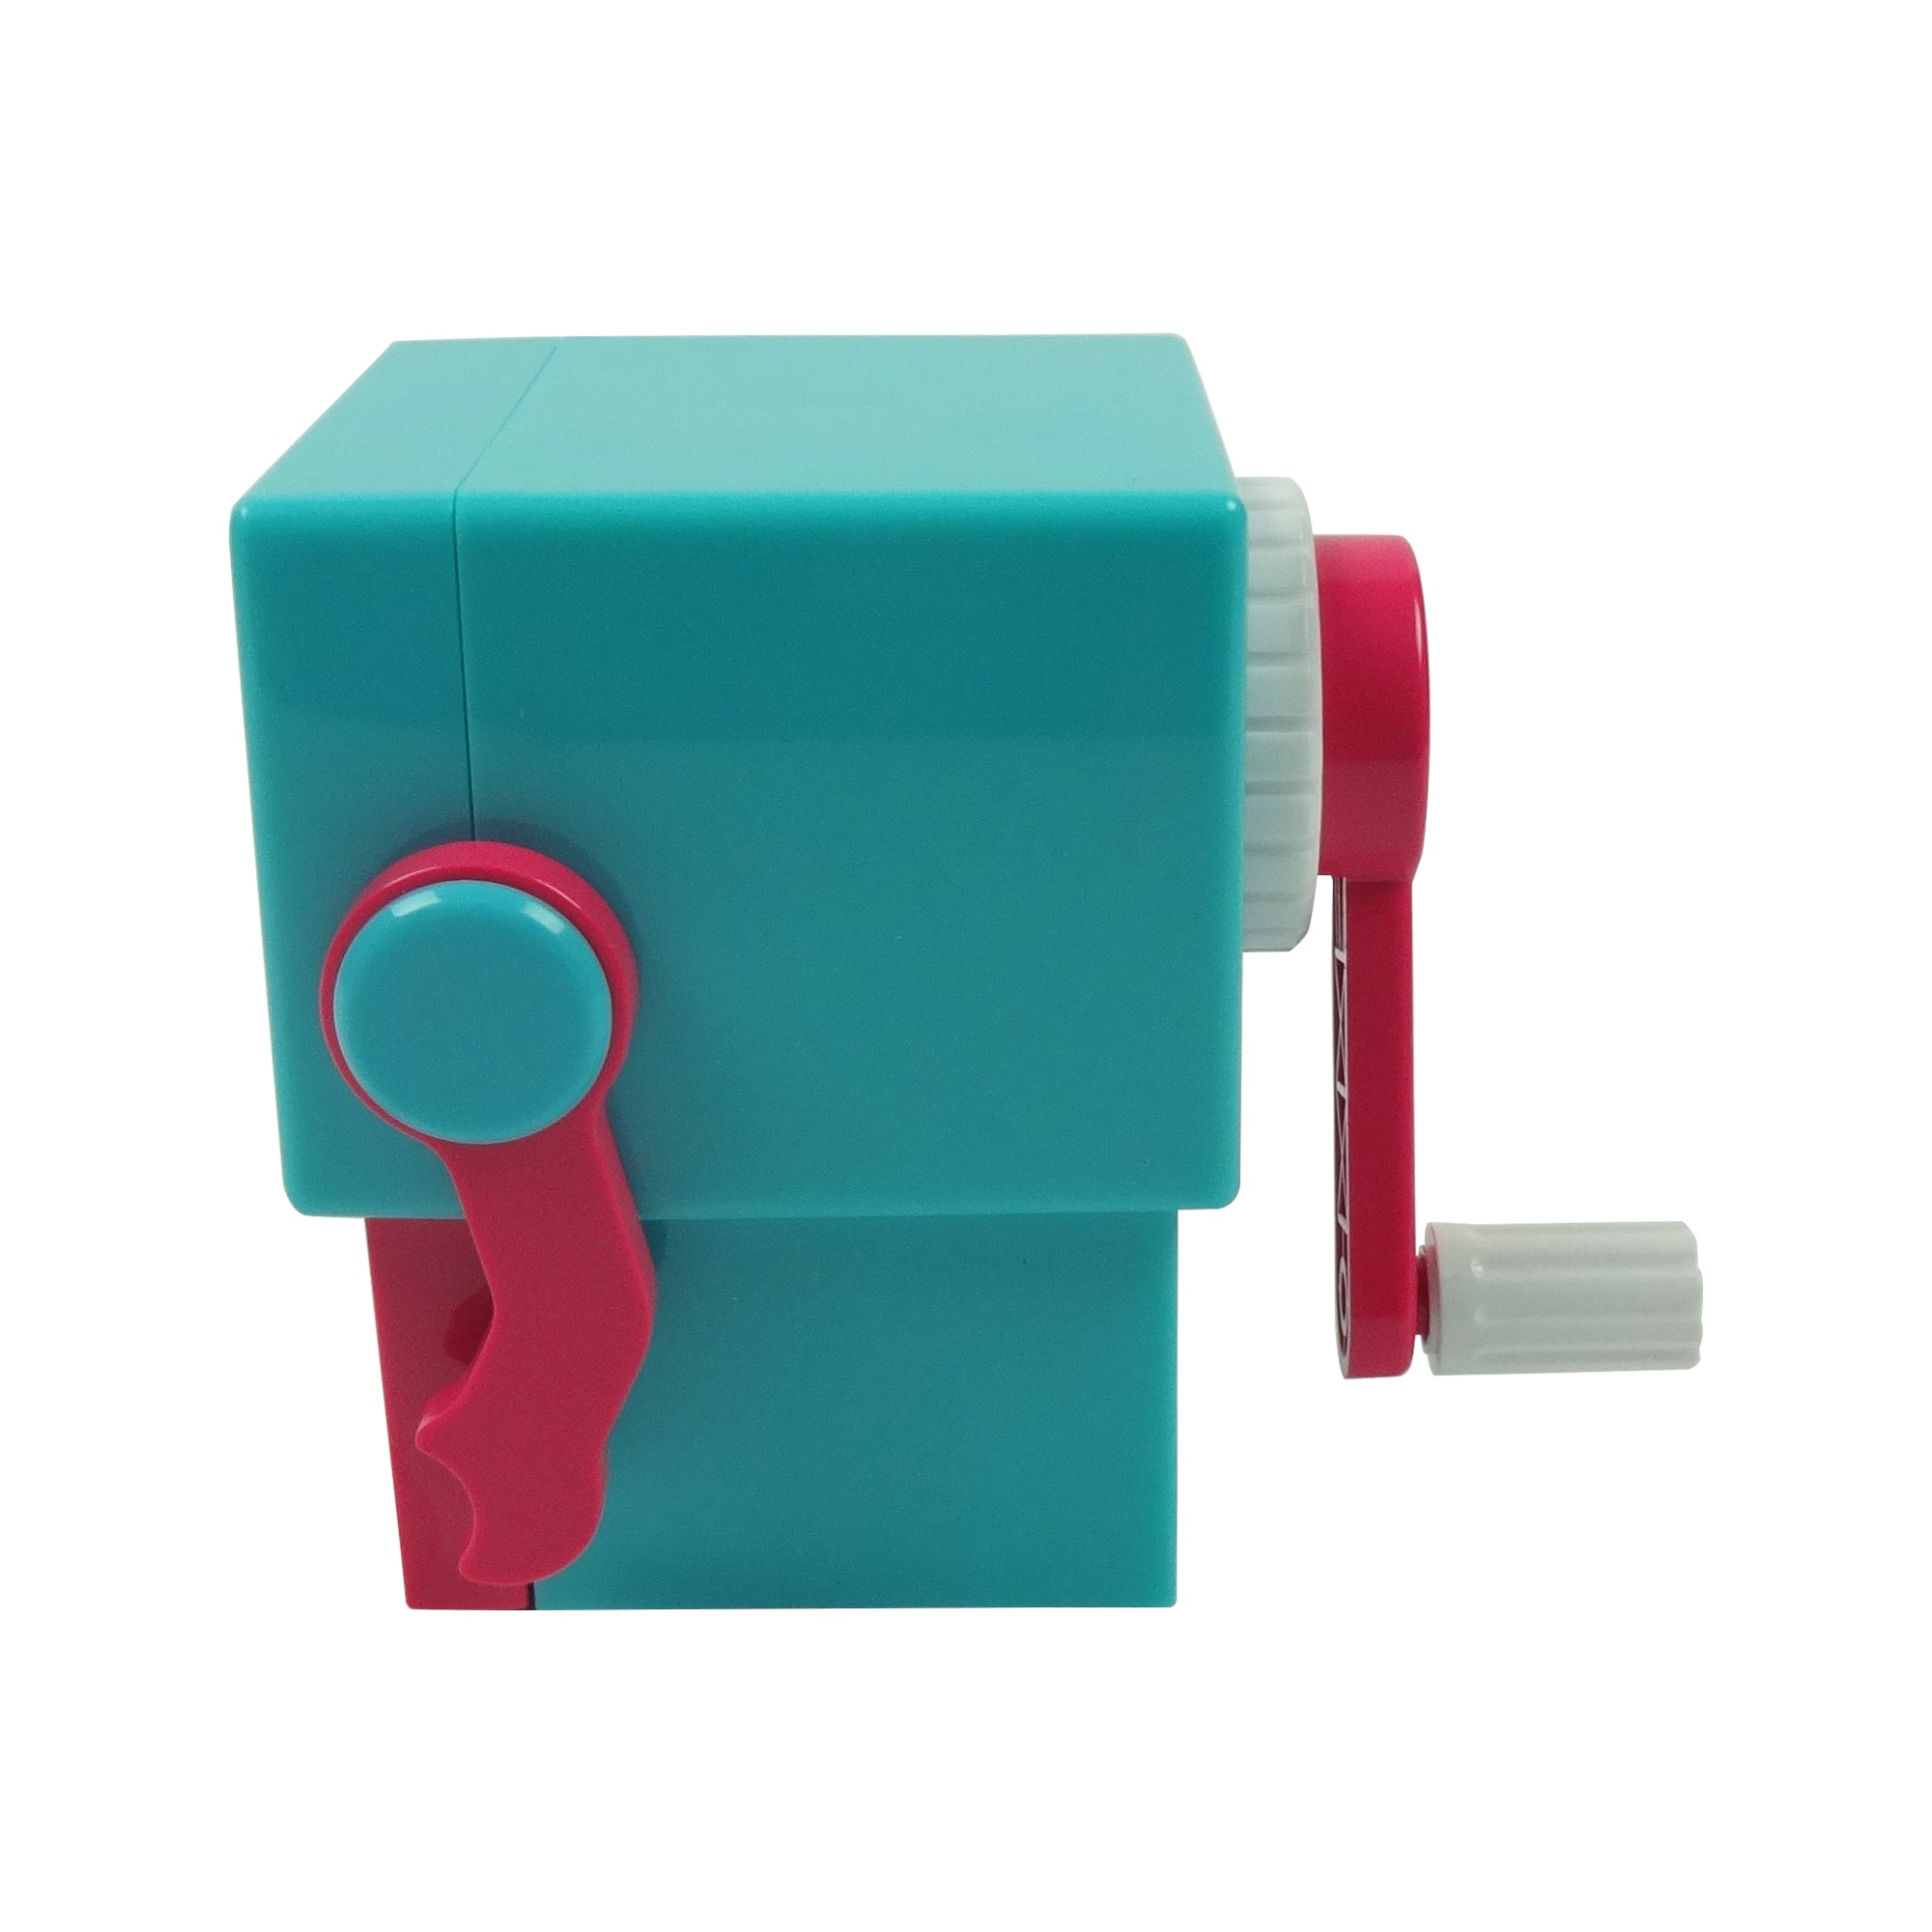 Plastic Pencil Sharpener - Winking Mr. Robot Pink